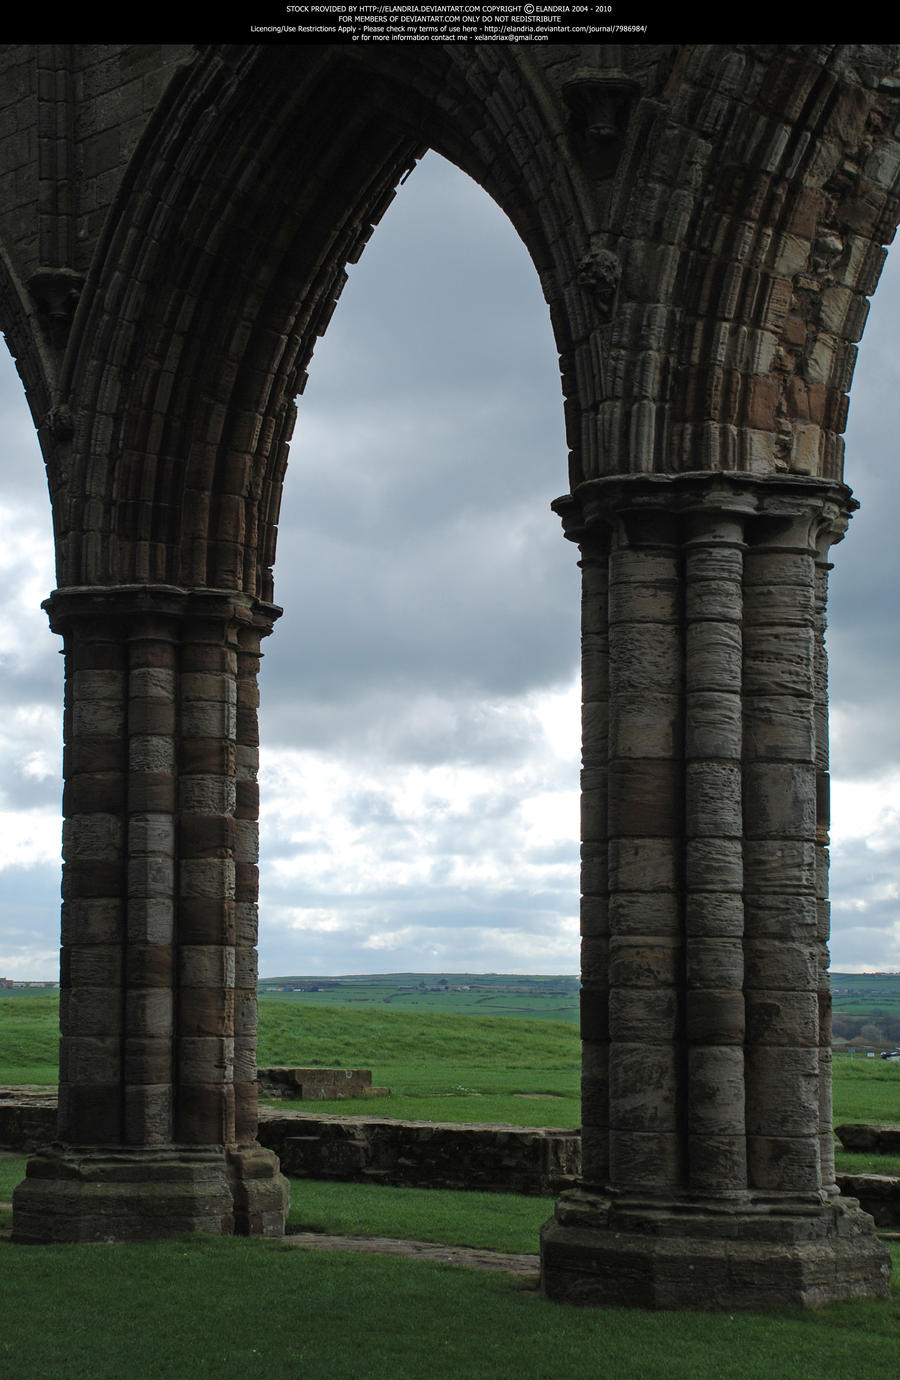 Age of Arches 2